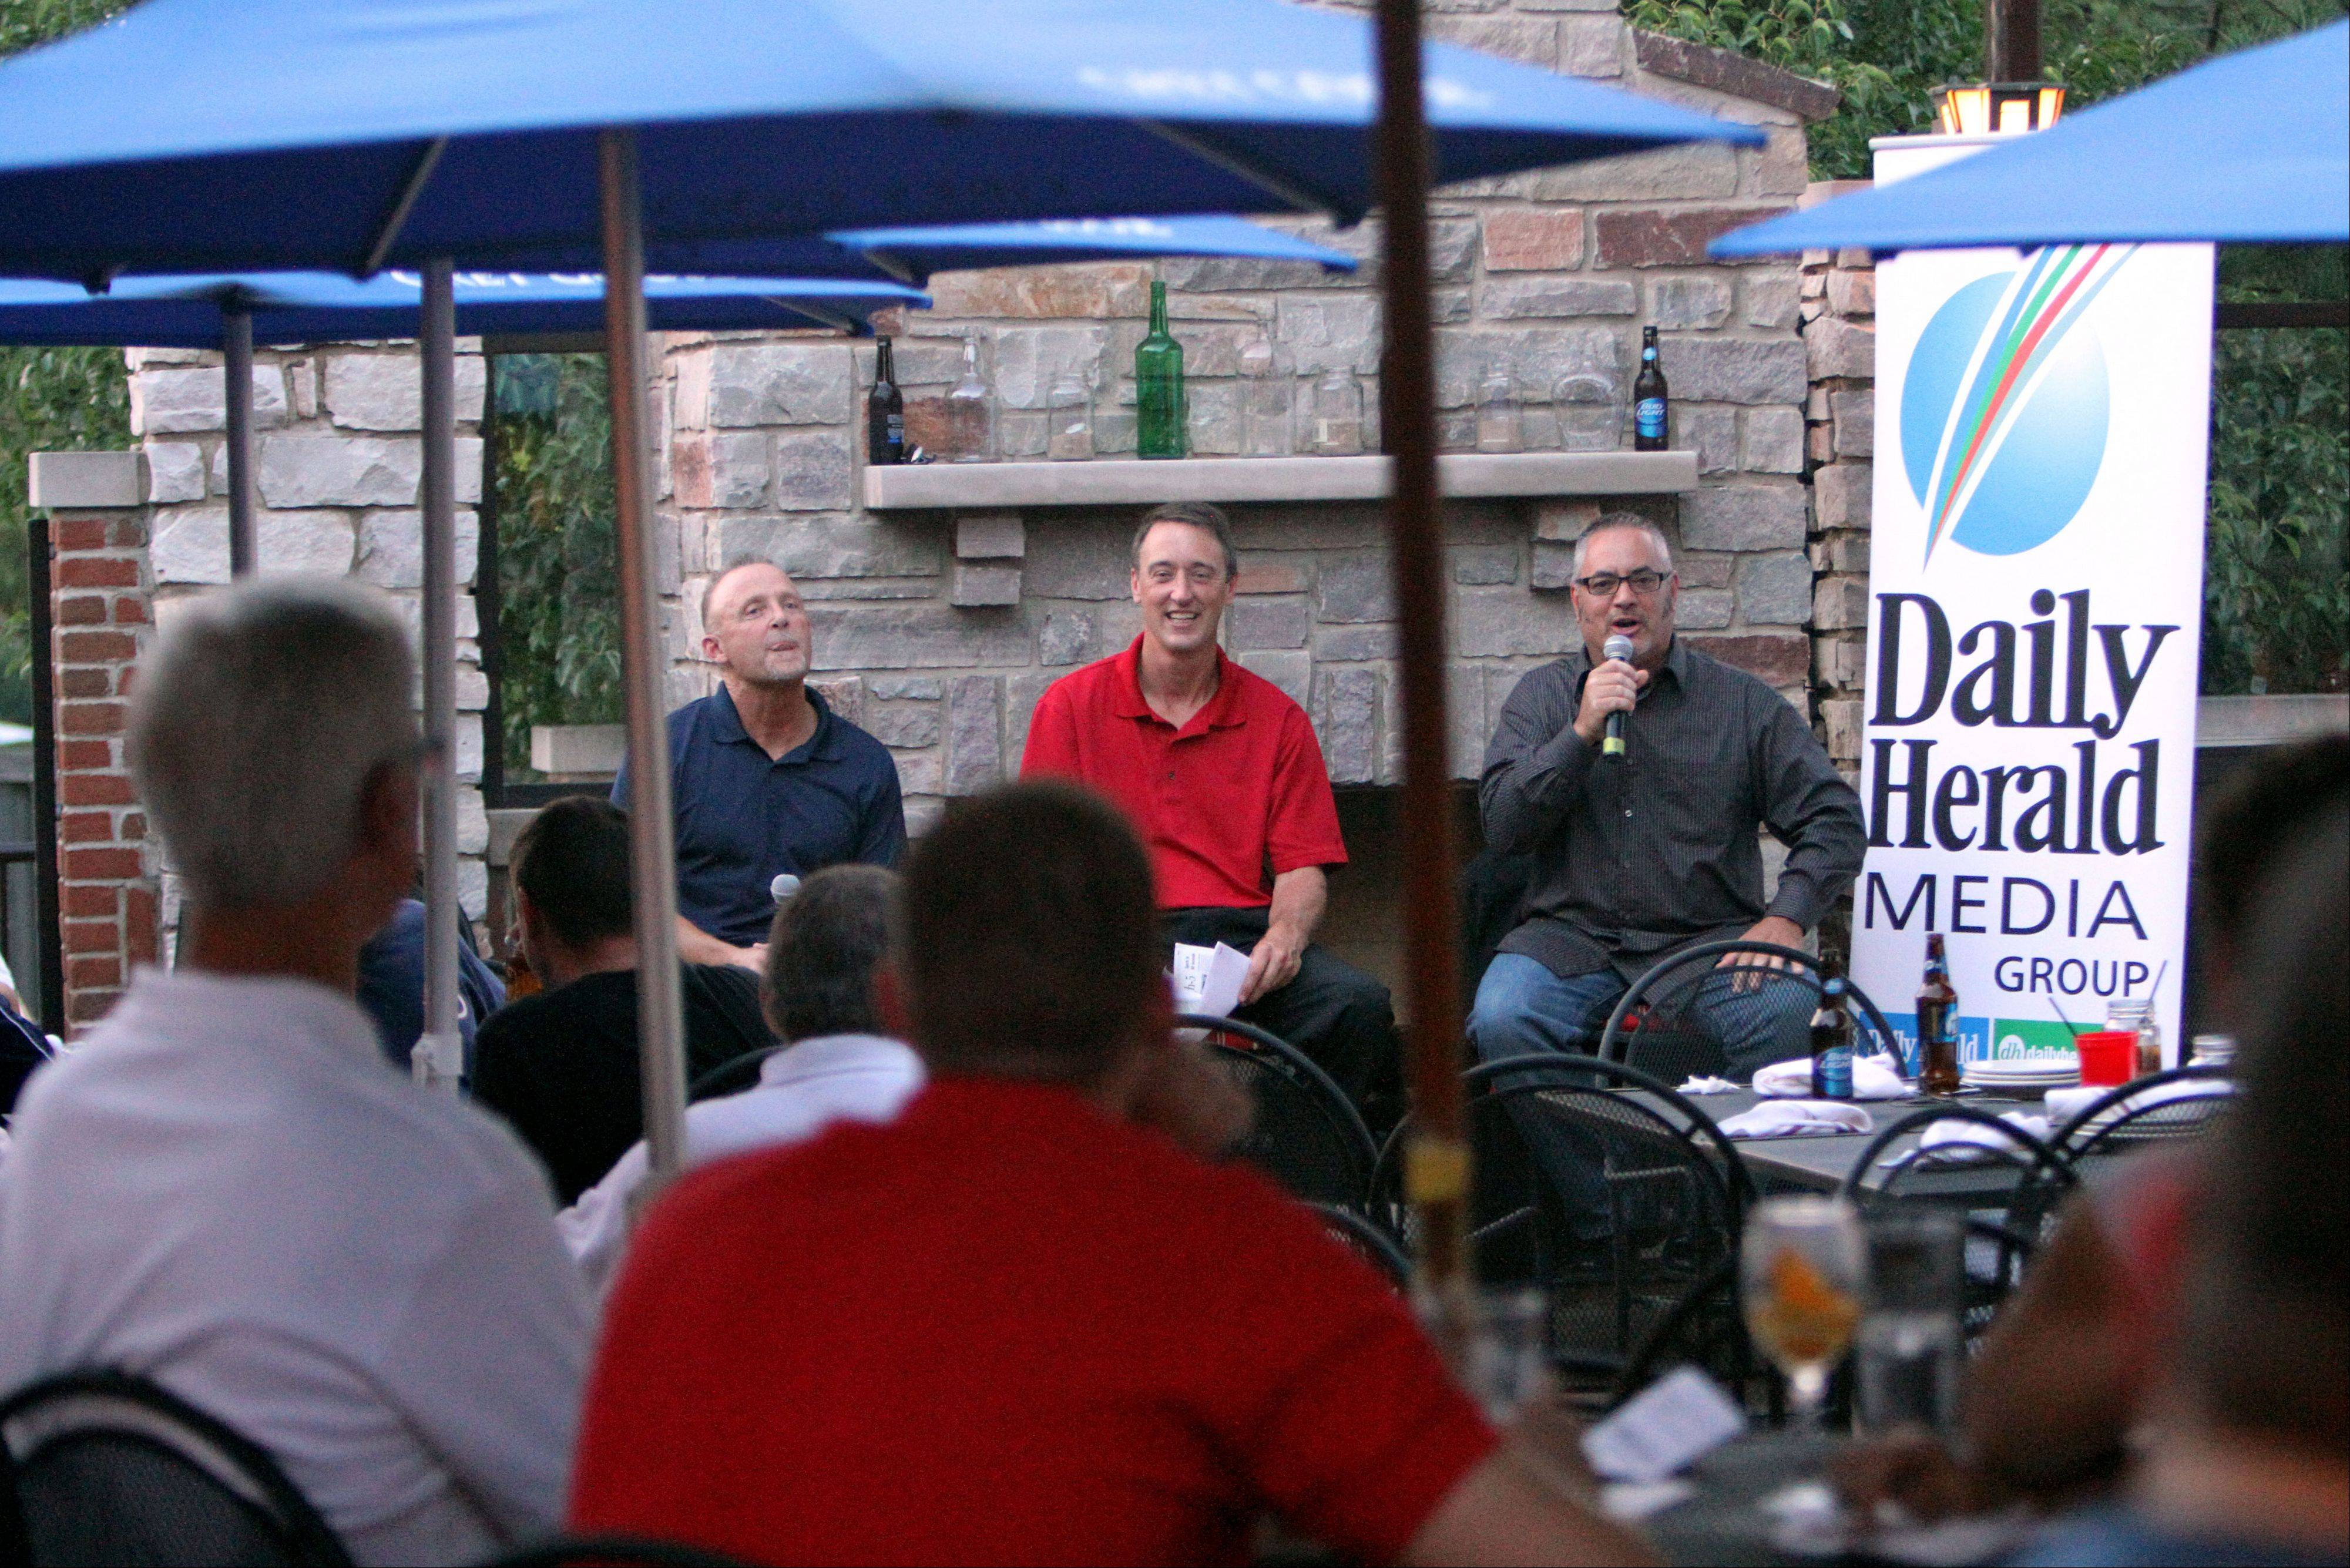 From left, Bears beat writer Bob LeGere, fantasy football columnist John Dietz, and and sports writer Joe Aguilar participate in a Daily Herald hosted Fantasy Football preview event Monday for about 100 subscribers at Rack House Kitchen and Tavern in Arlington Heights.